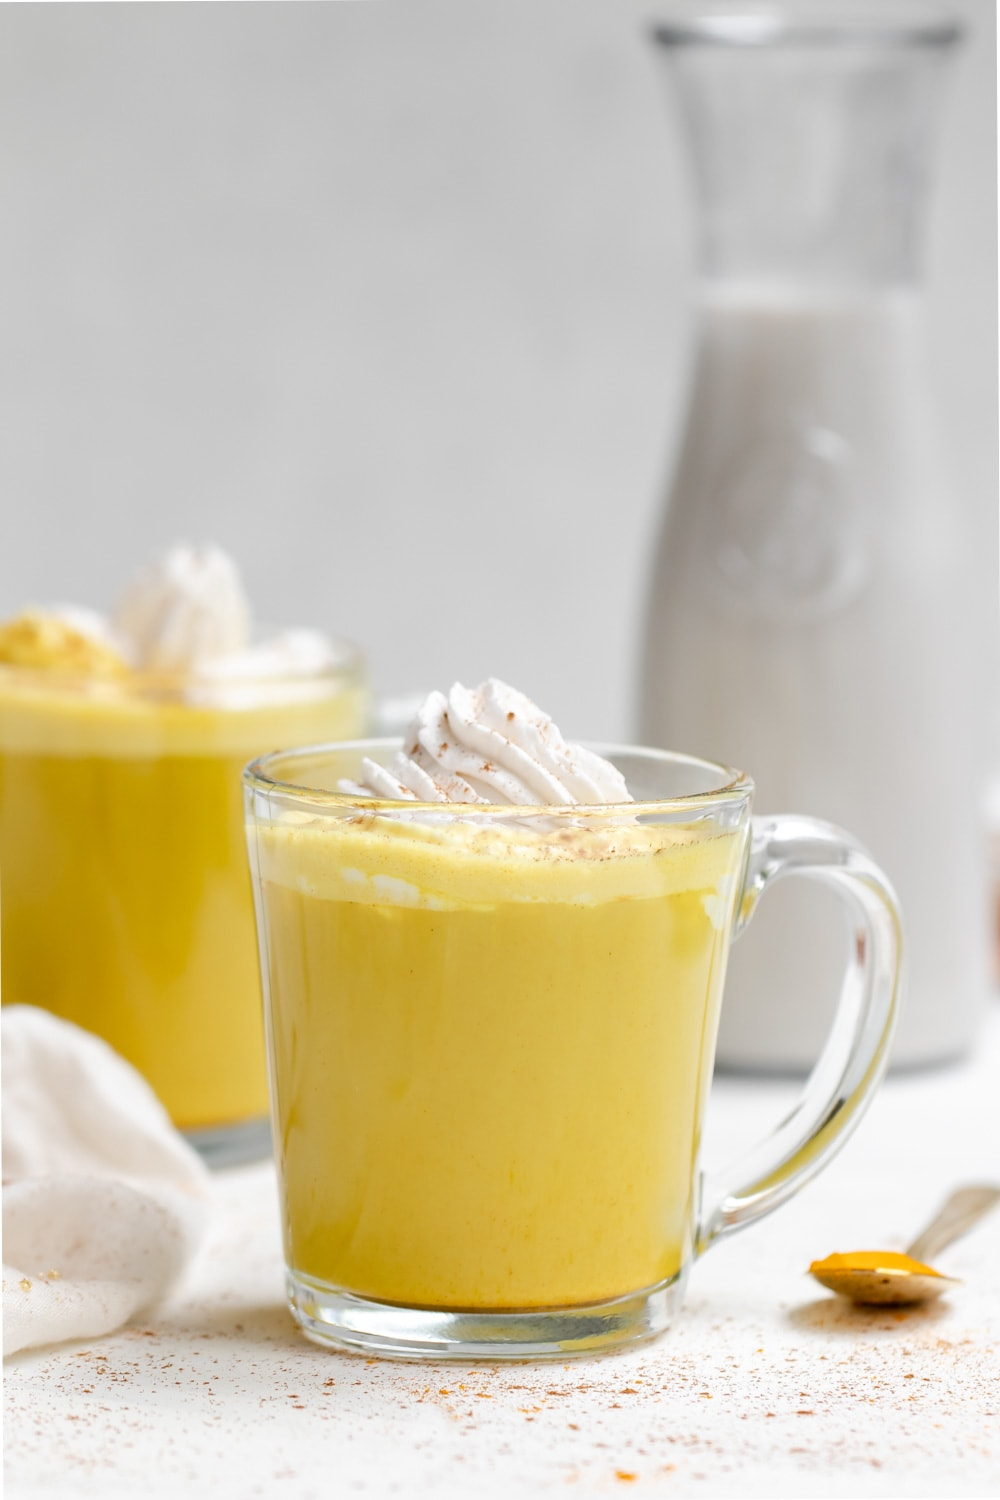 Golden milk latte recipe in a glass cup with whipped cream.